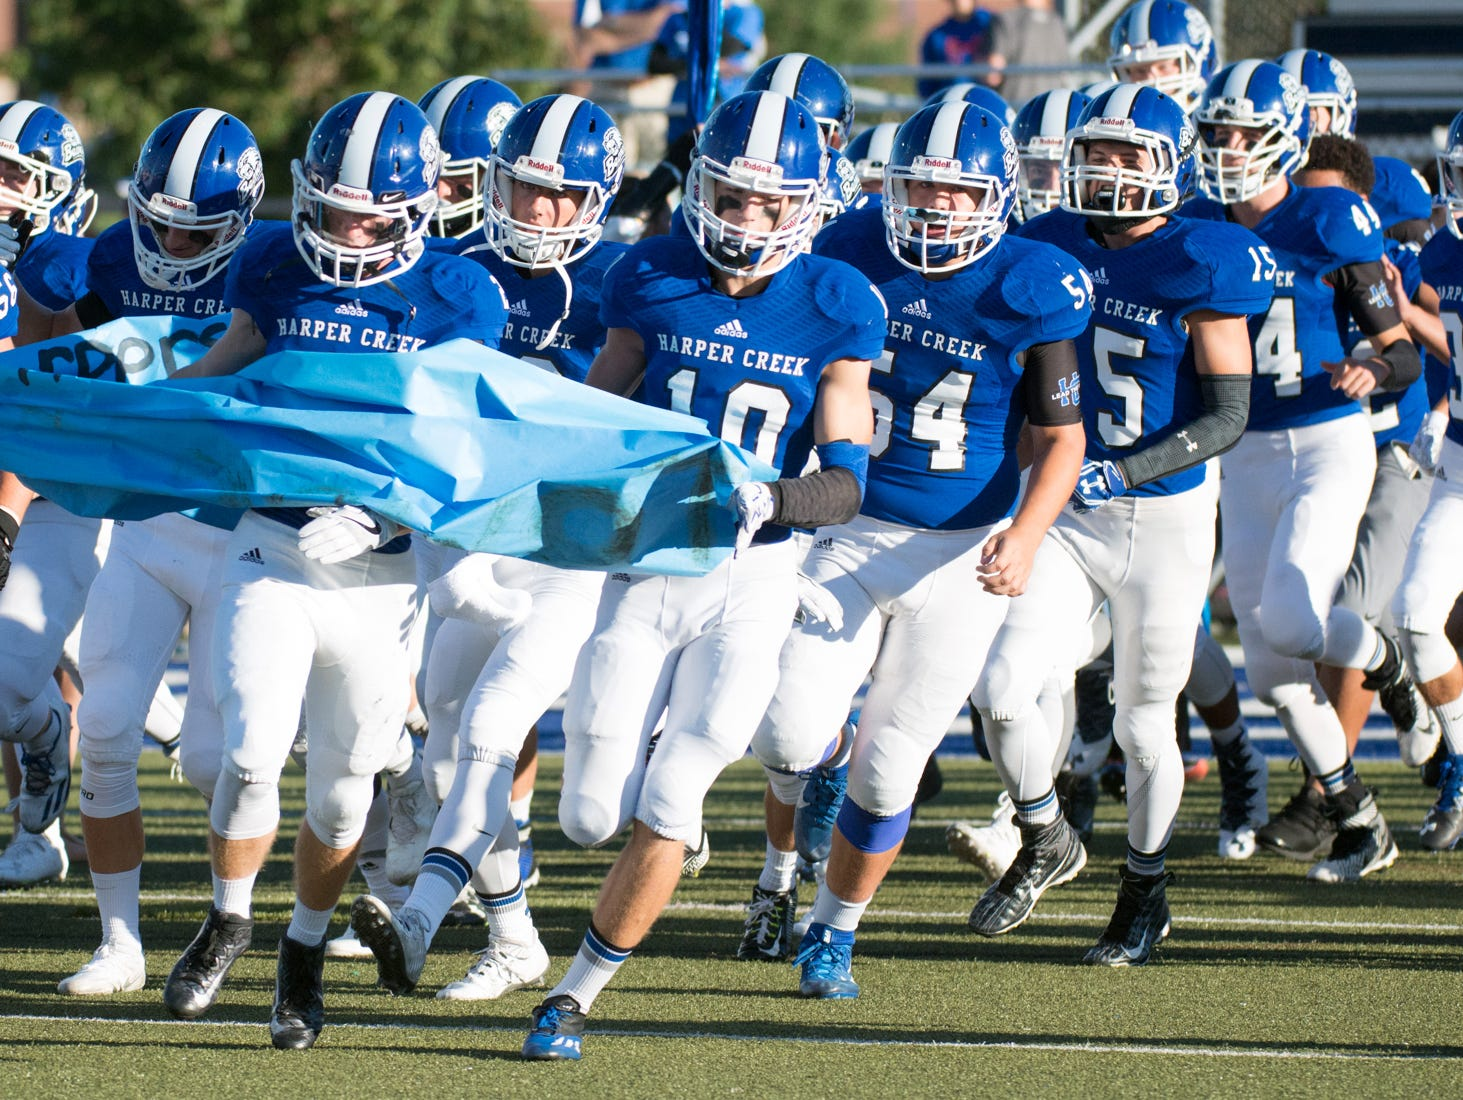 The Harper Creek Beavers take the field Thursday night as they prepare to face off against the Northwest Mounties.